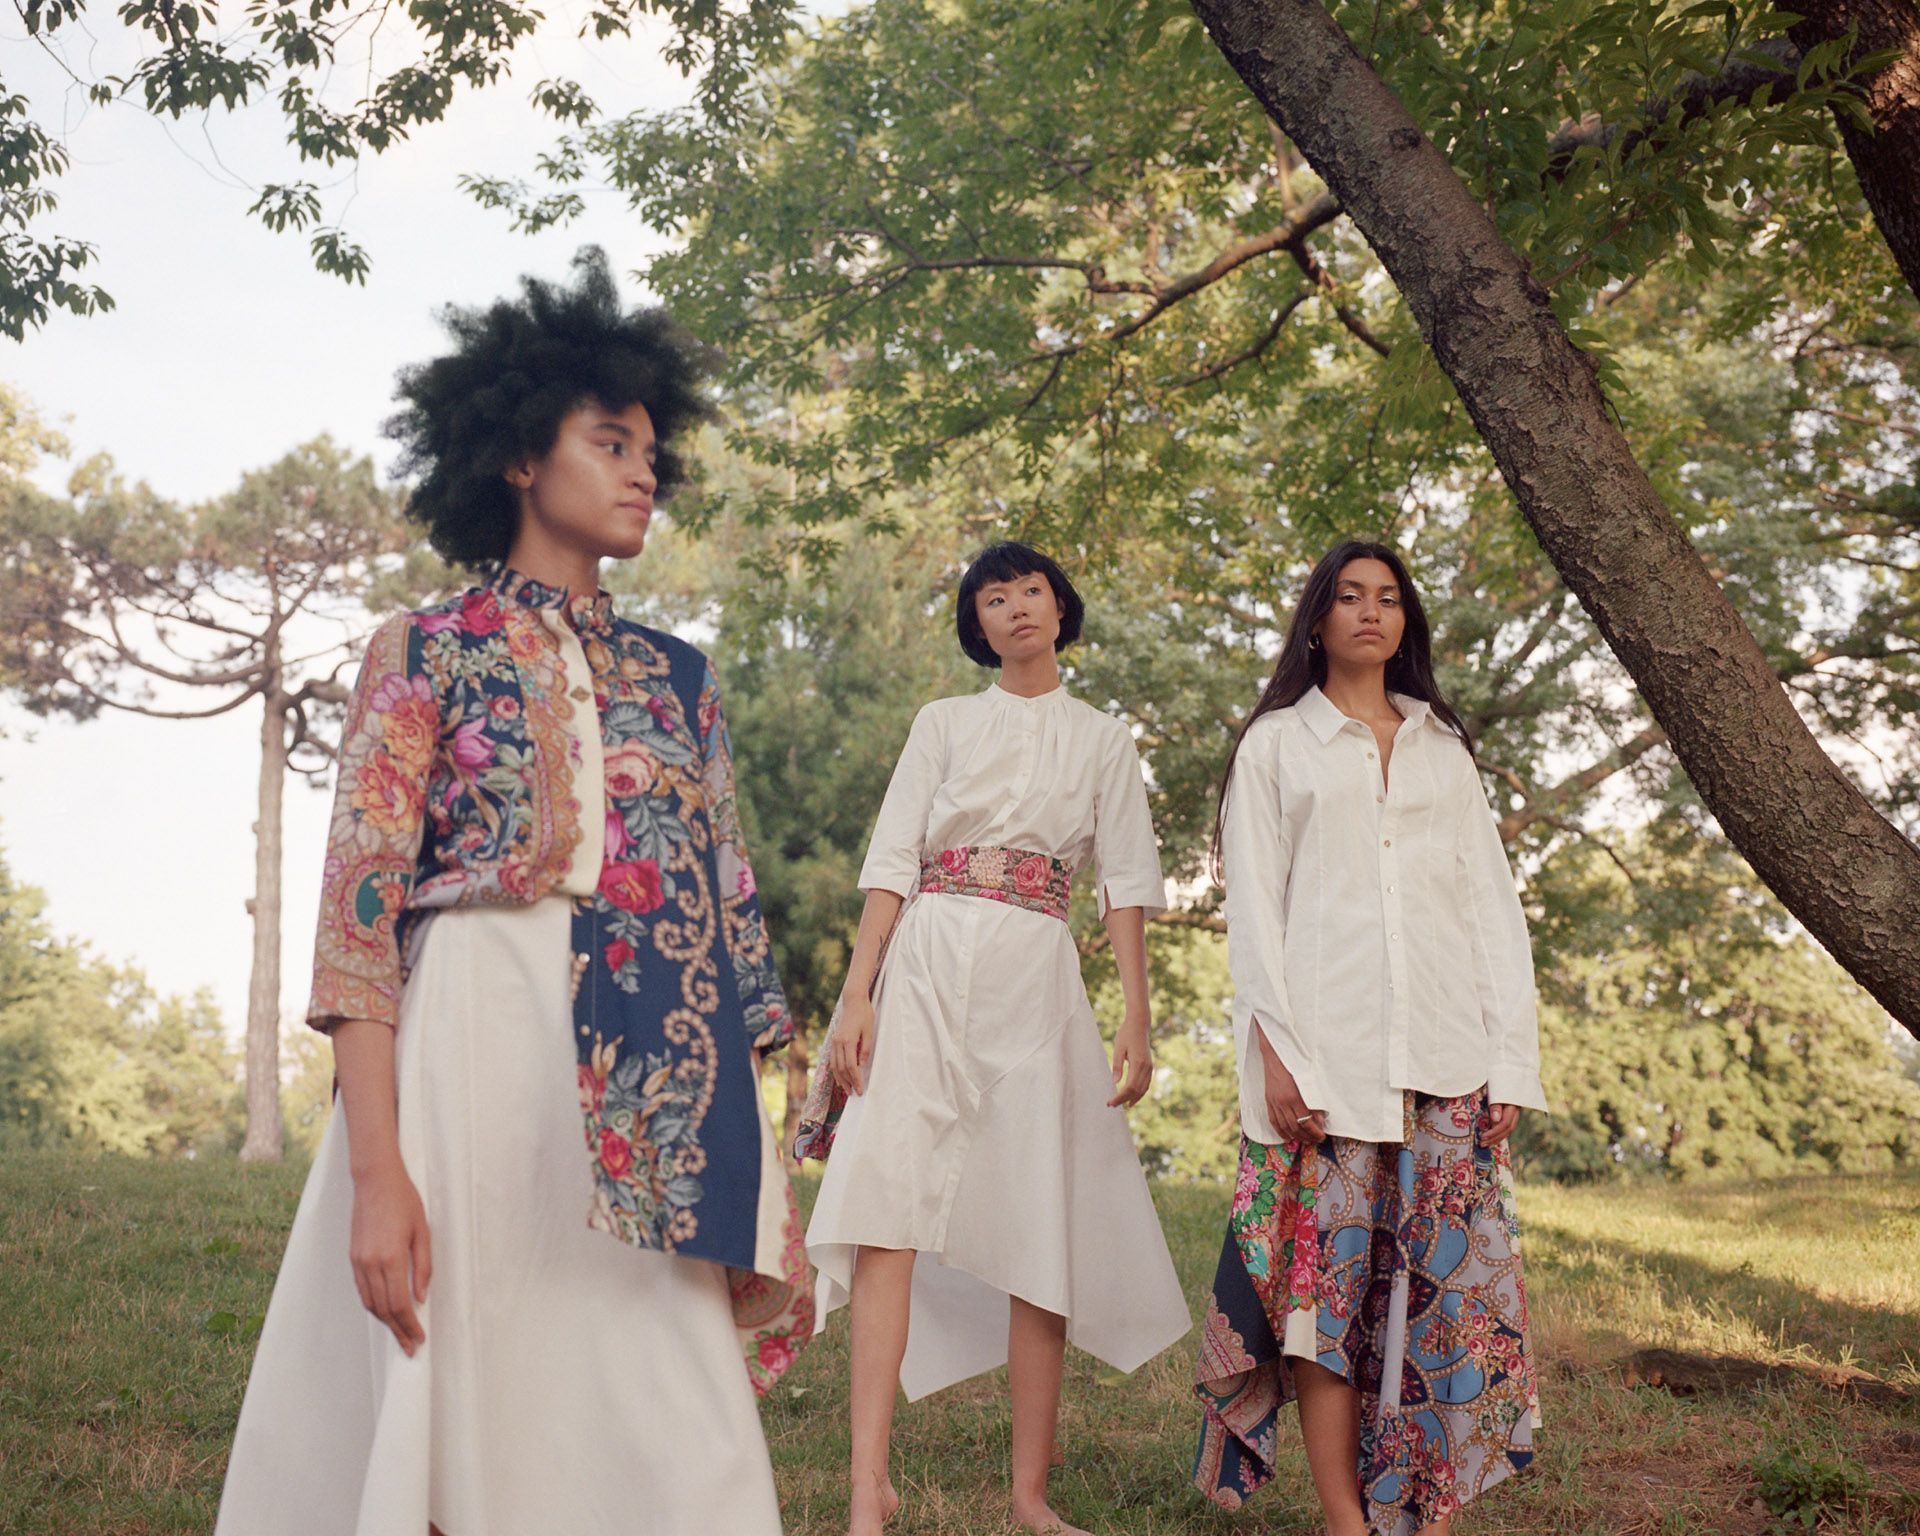 models in nature by Oumayma B Tanfous for Sustainability Emerging Designers in Flaunt Magazine